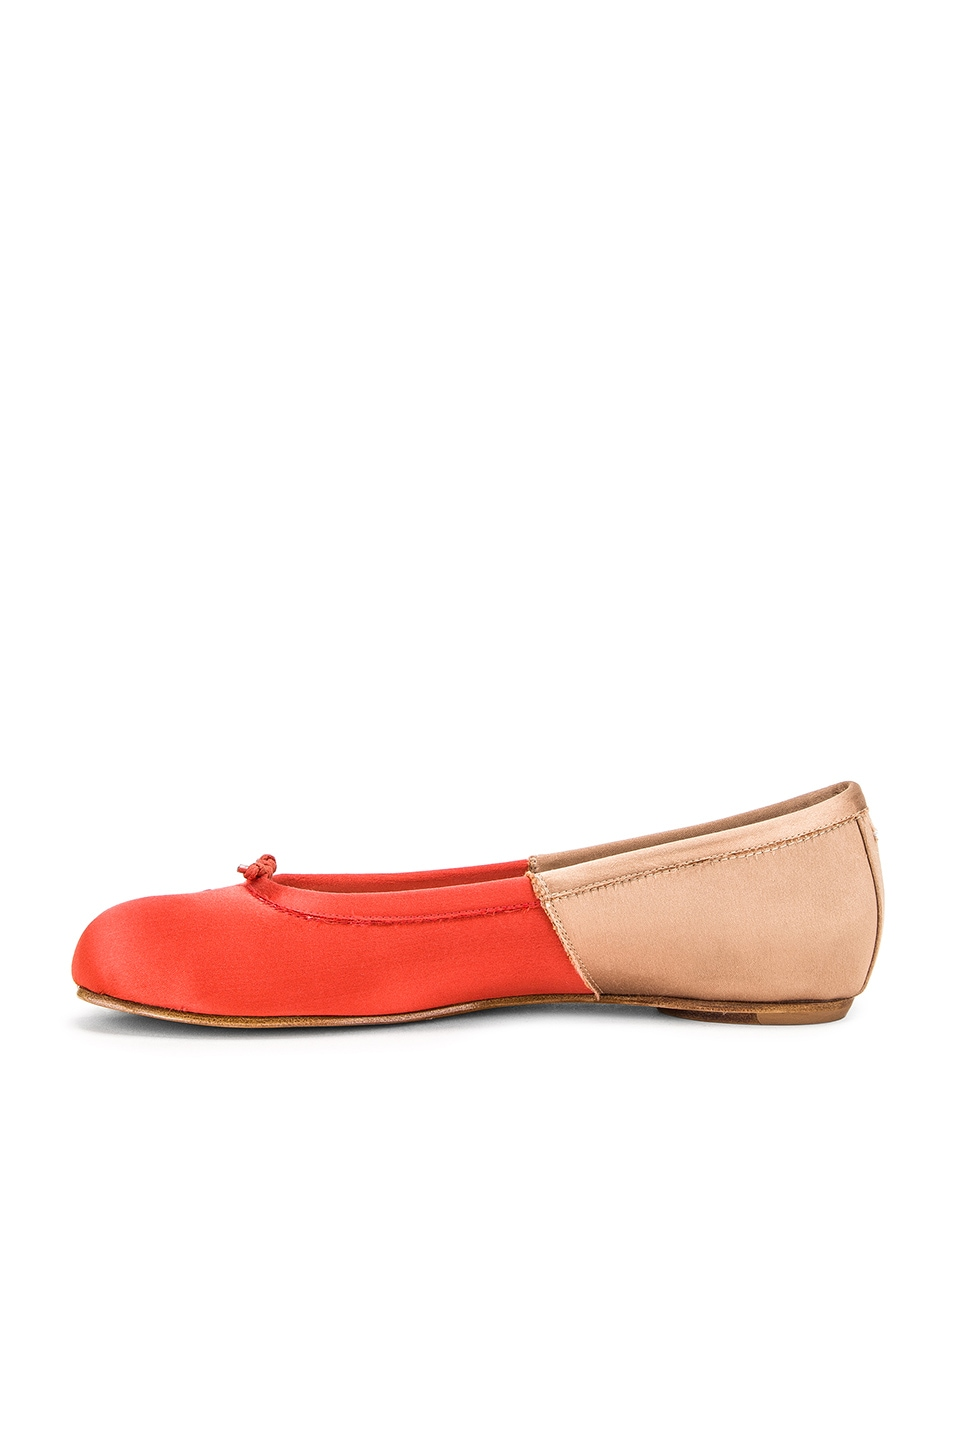 Image 5 of Maison Margiela Colorblock Ballerina Flat in Coral & Light Pink